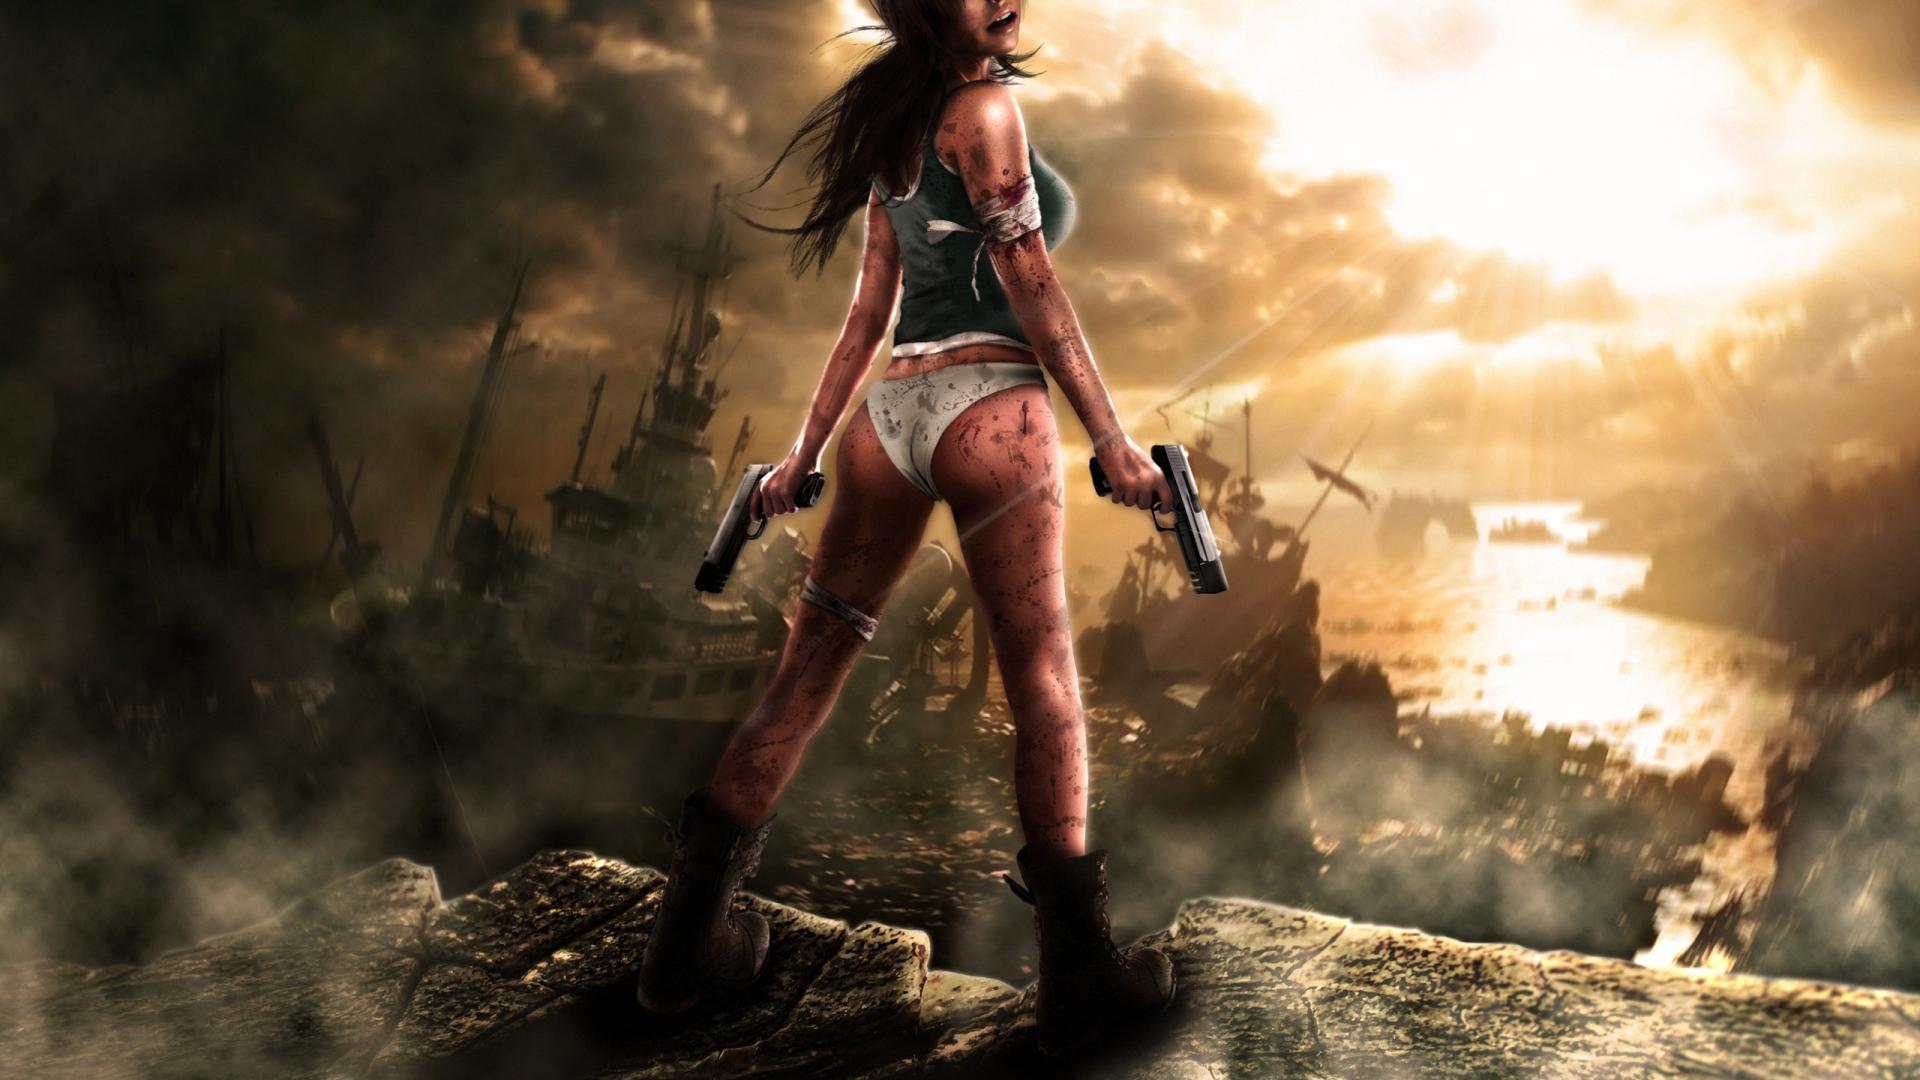 Wonder treasure tomb raider porn game screenshot naked movie